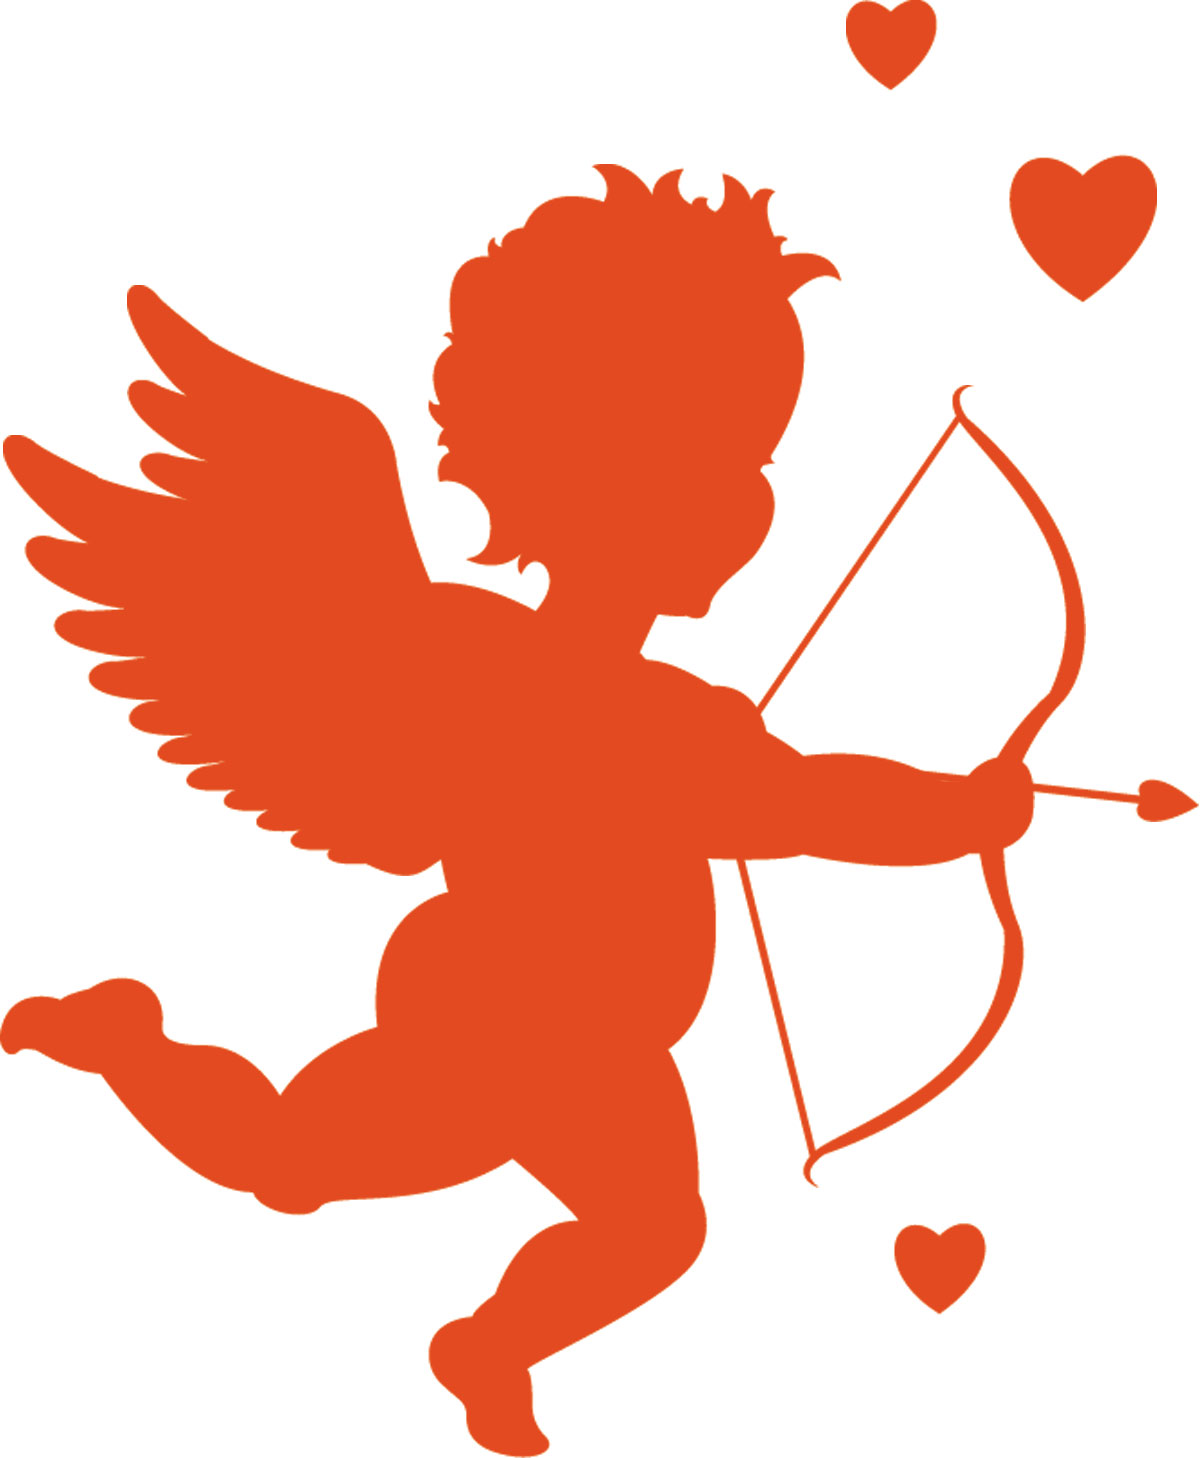 Free Cupid, Download Free Clip Art, Free Clip Art on Clipart.